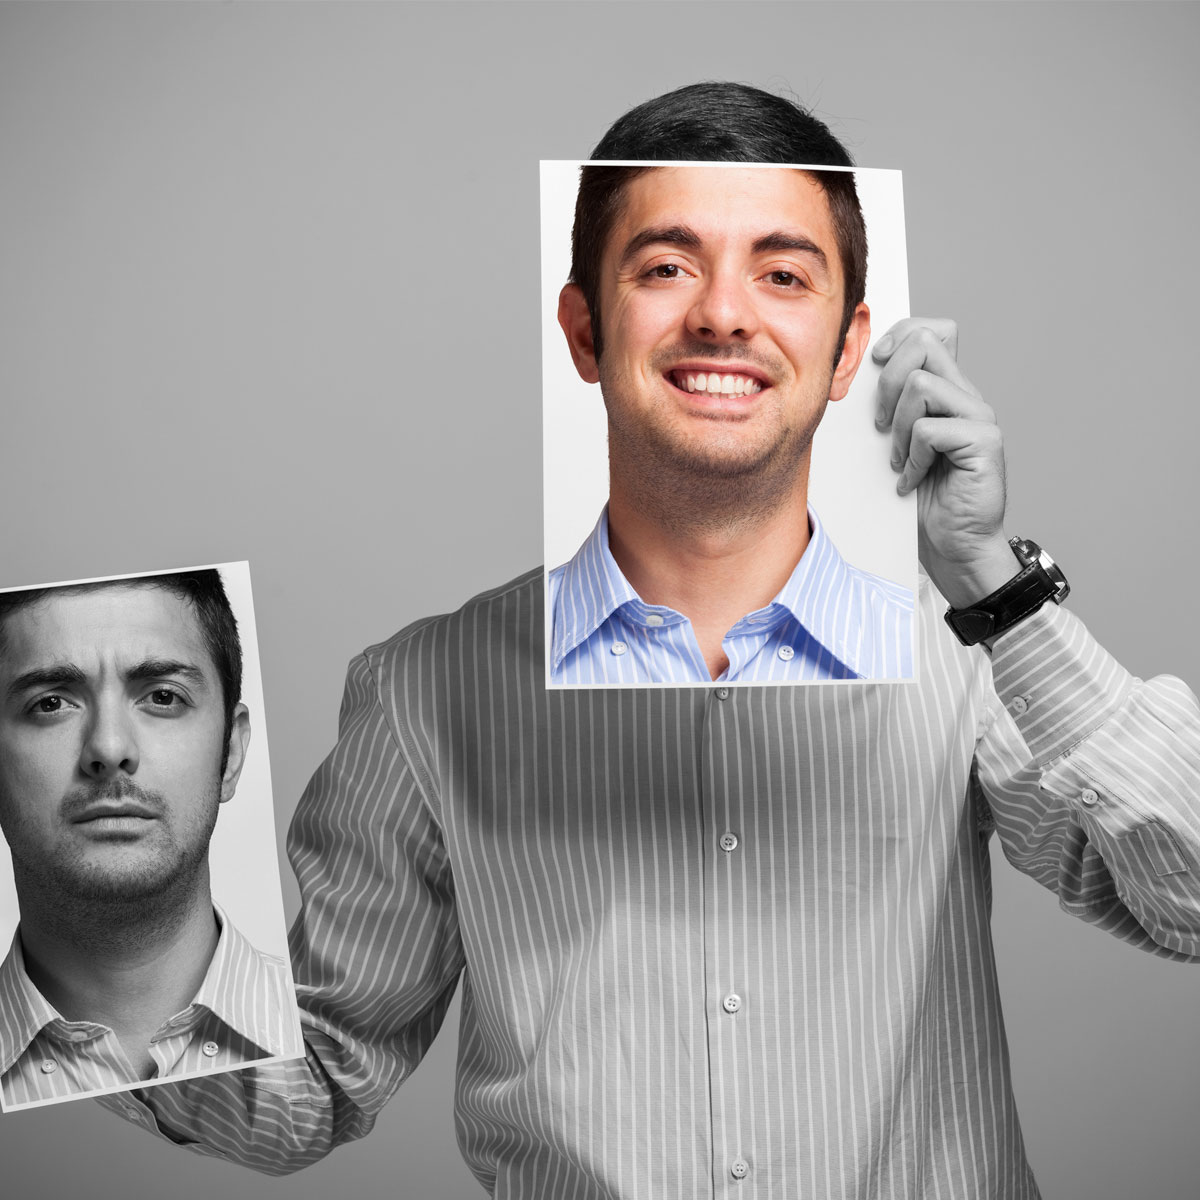 Man holding a smiling photo of his face in front of his face.